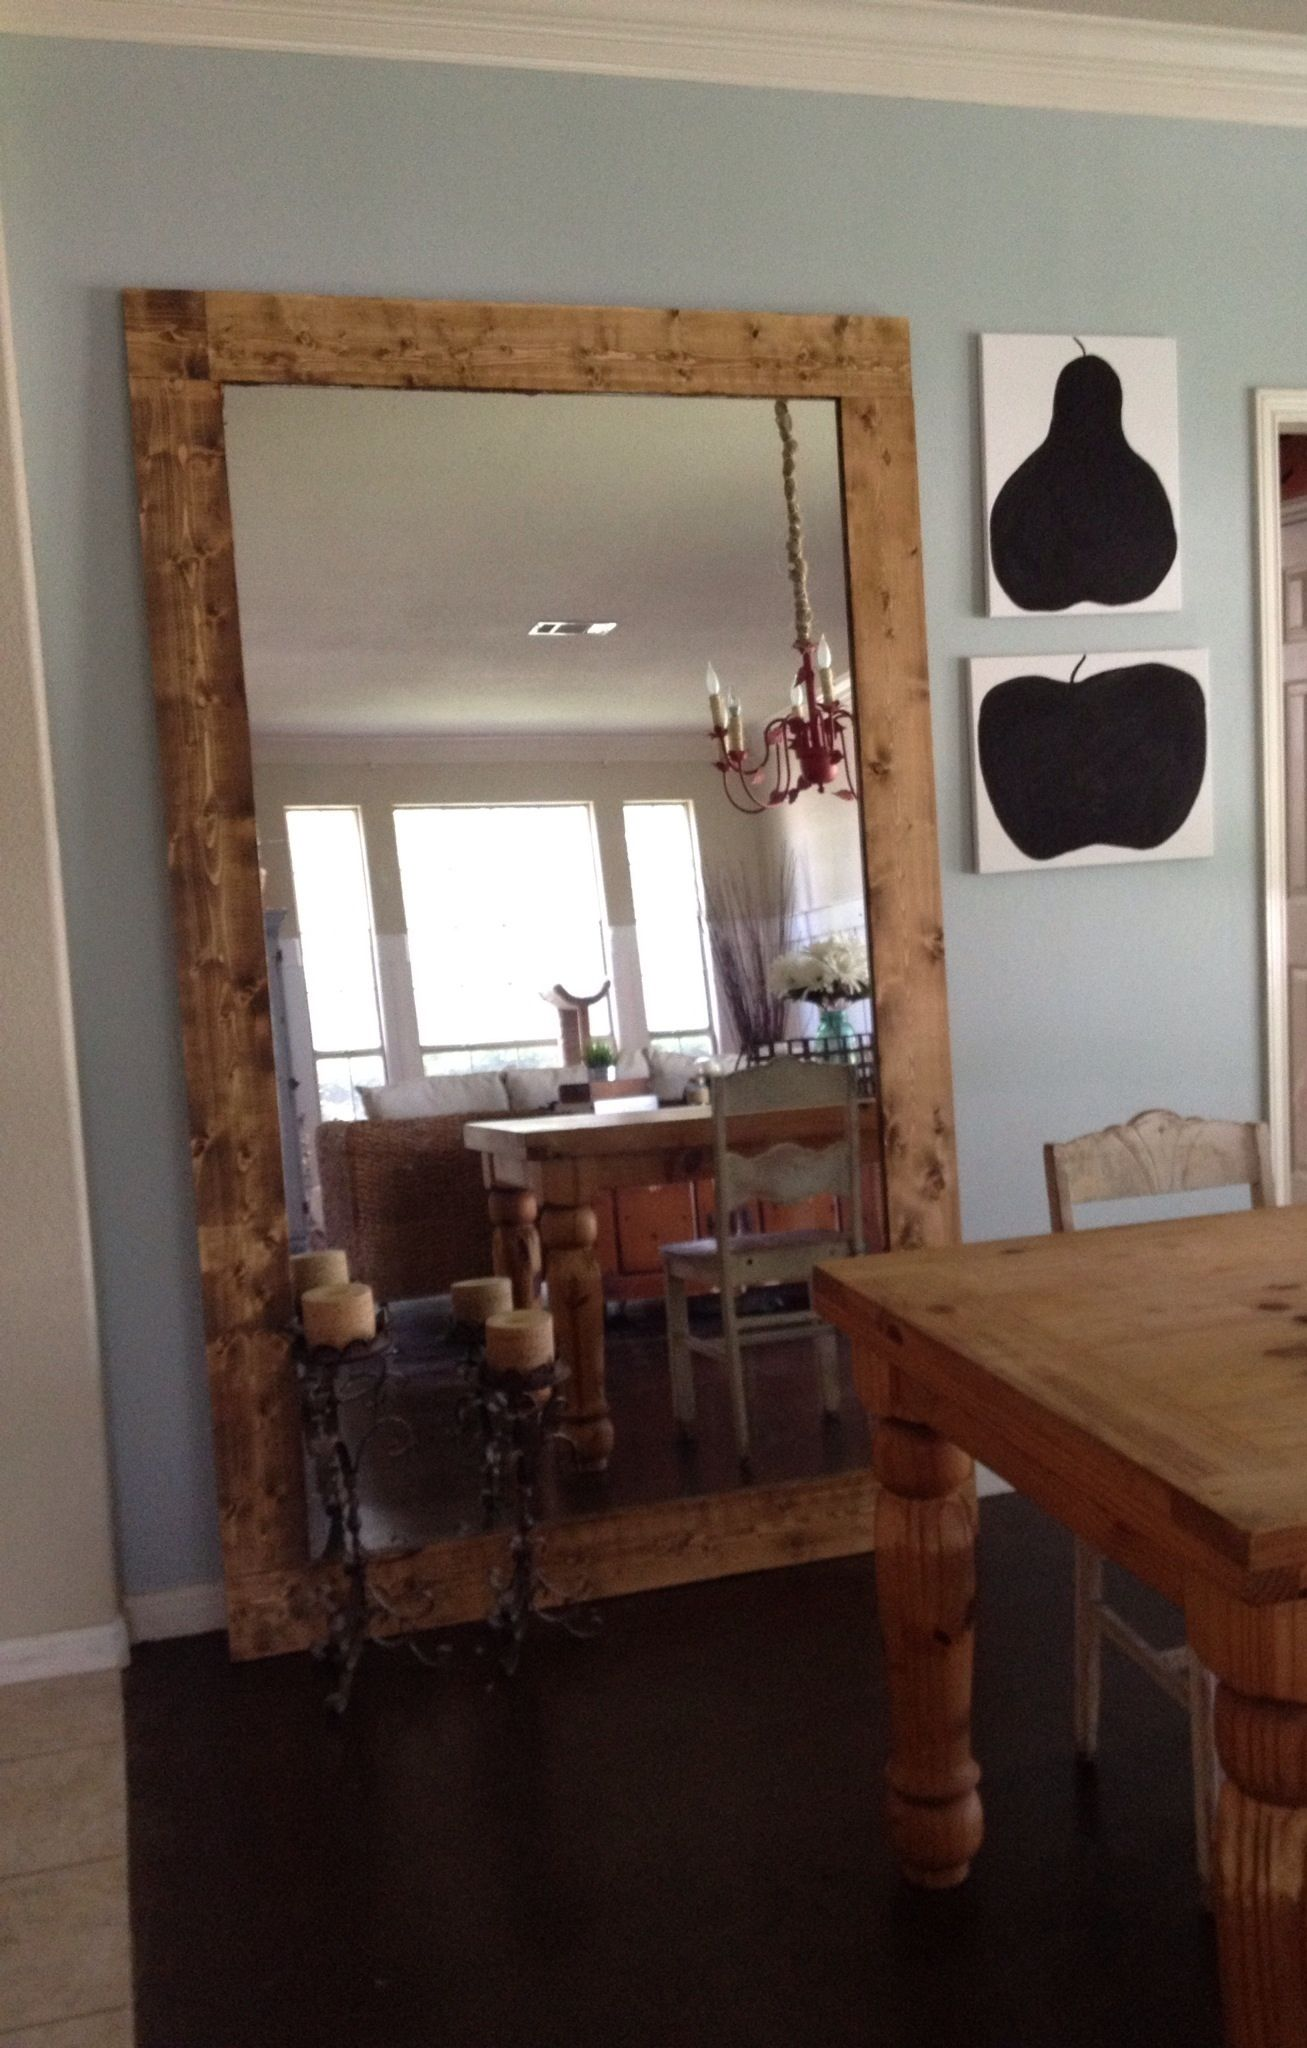 Floor mirror repurposed bathroom mirror